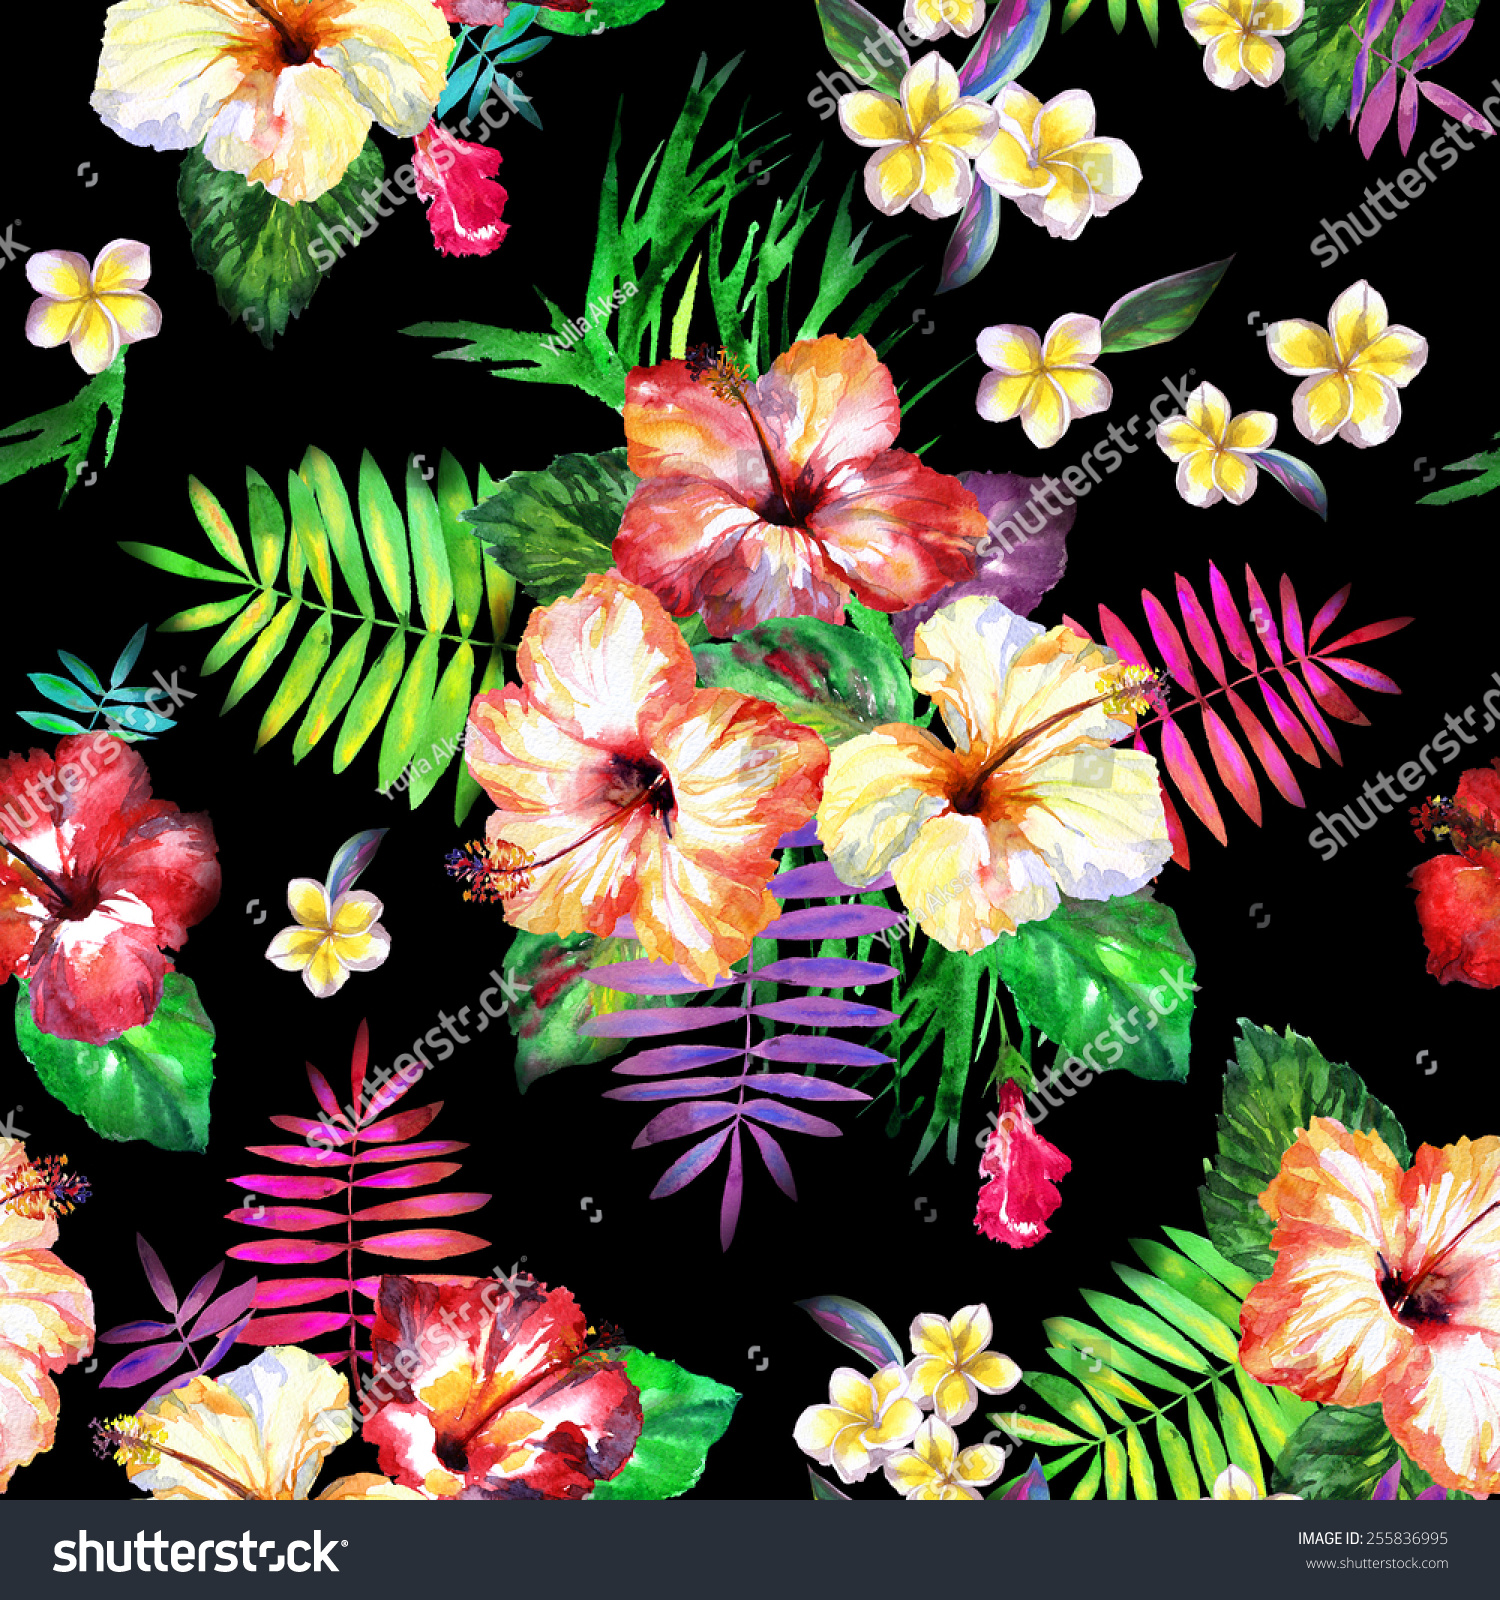 vivid seamless floral pattern diverse tropical flowers on